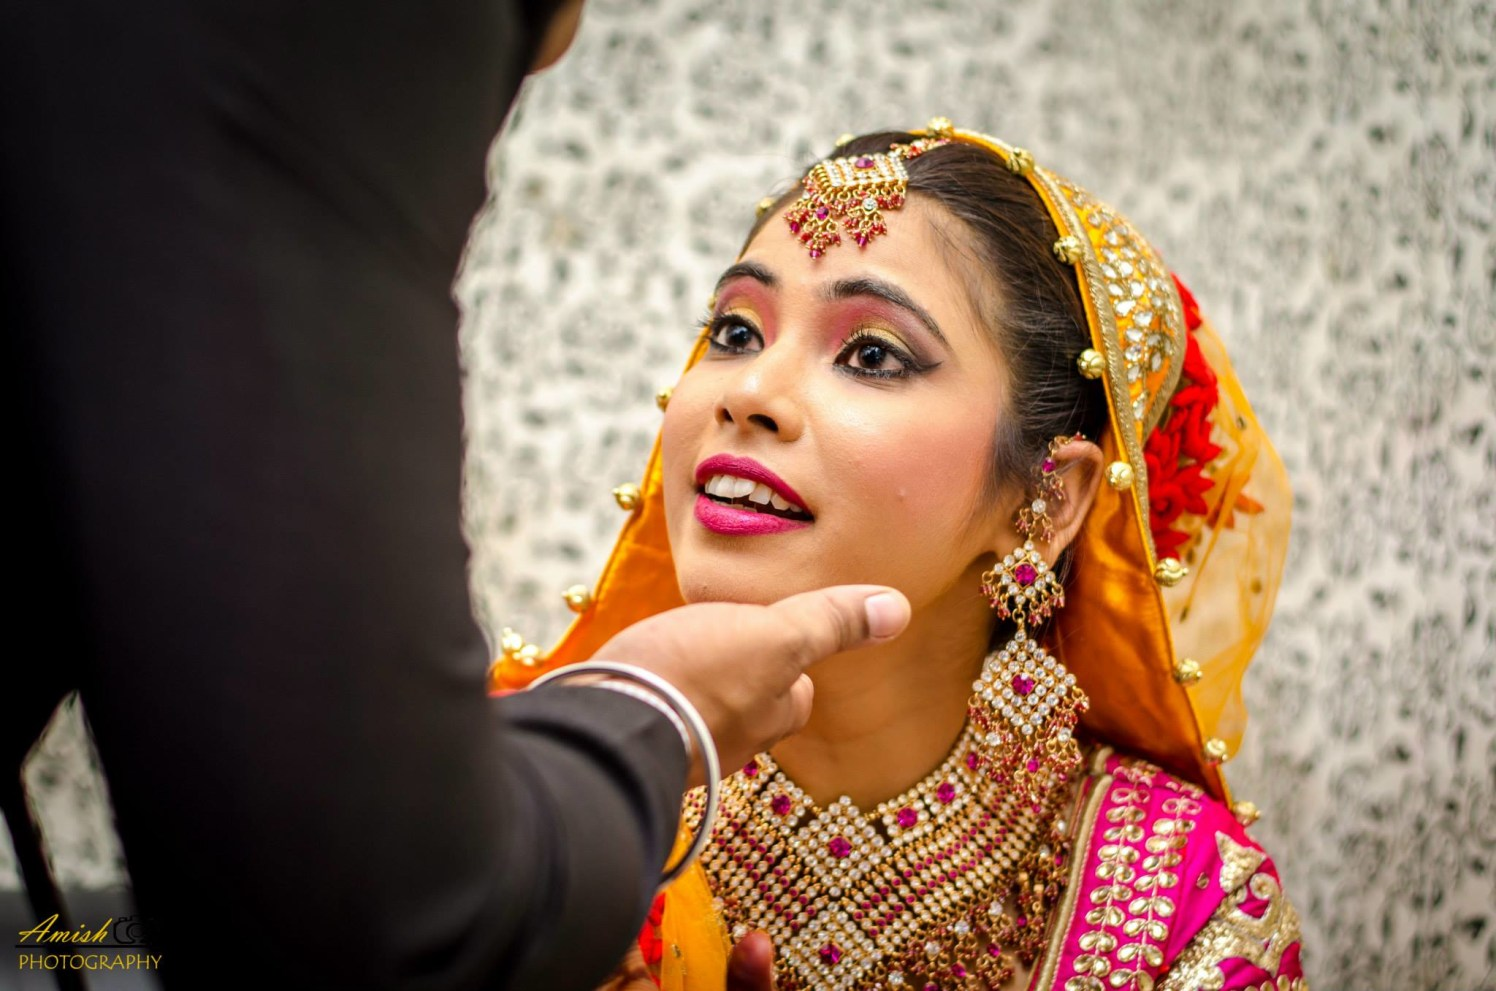 Mesmerizing Beauty of Bride by Amish Photography Wedding-photography | Weddings Photos & Ideas